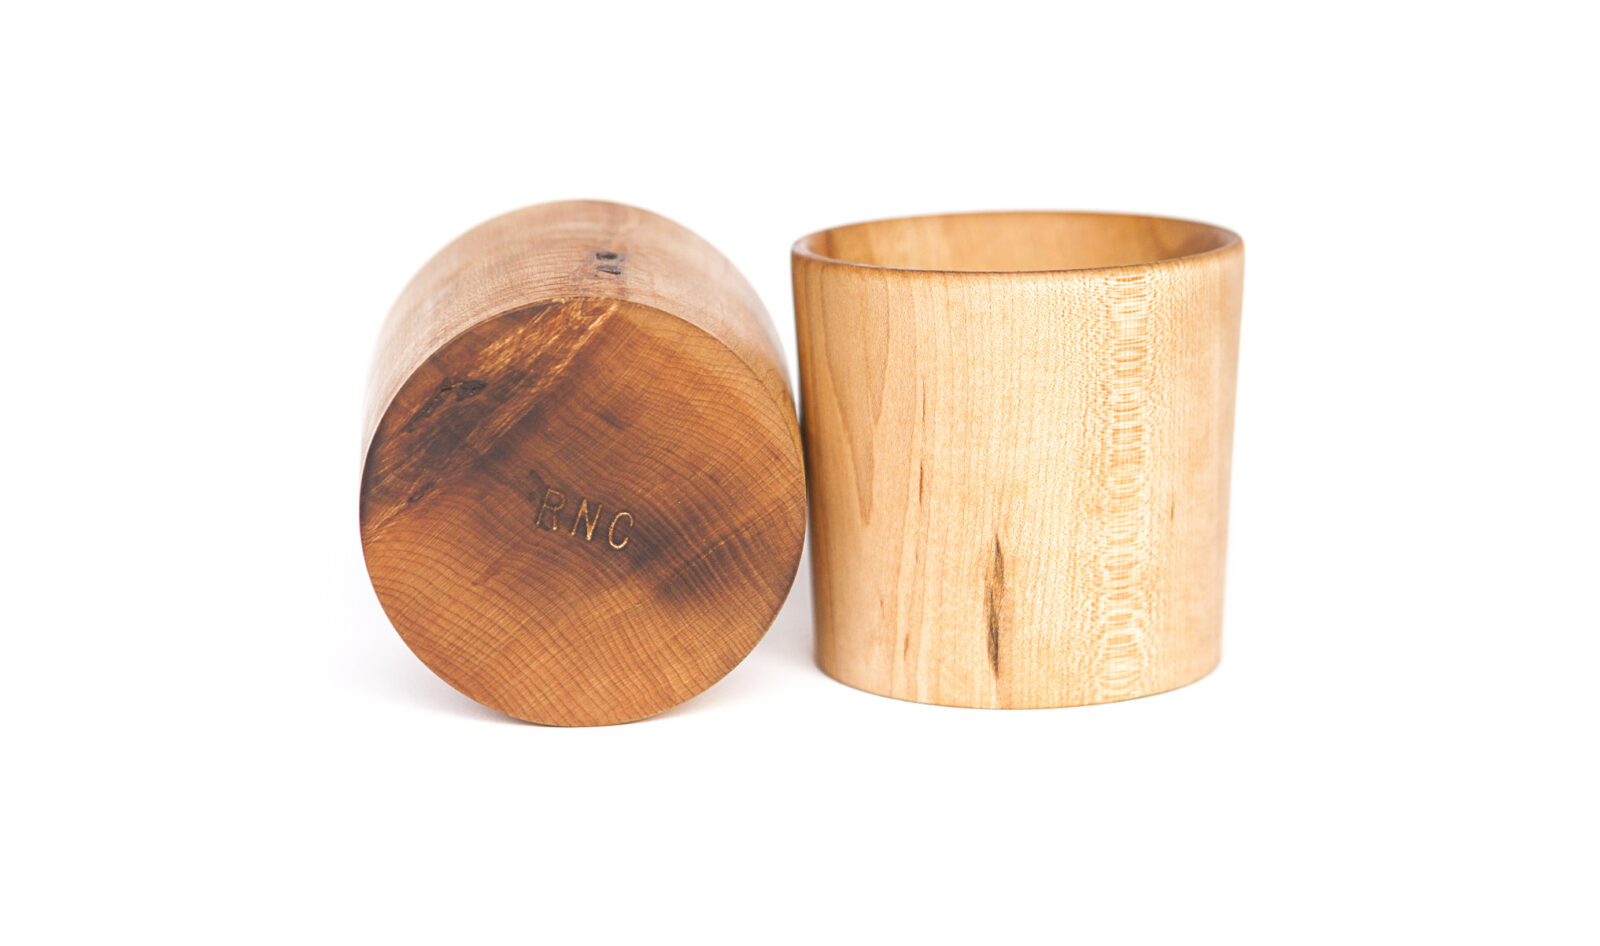 Wooden Whiskey Tumblers by Royal North Company copy 2 1600x946 - Wooden Whiskey Tumblers by Royal North Company